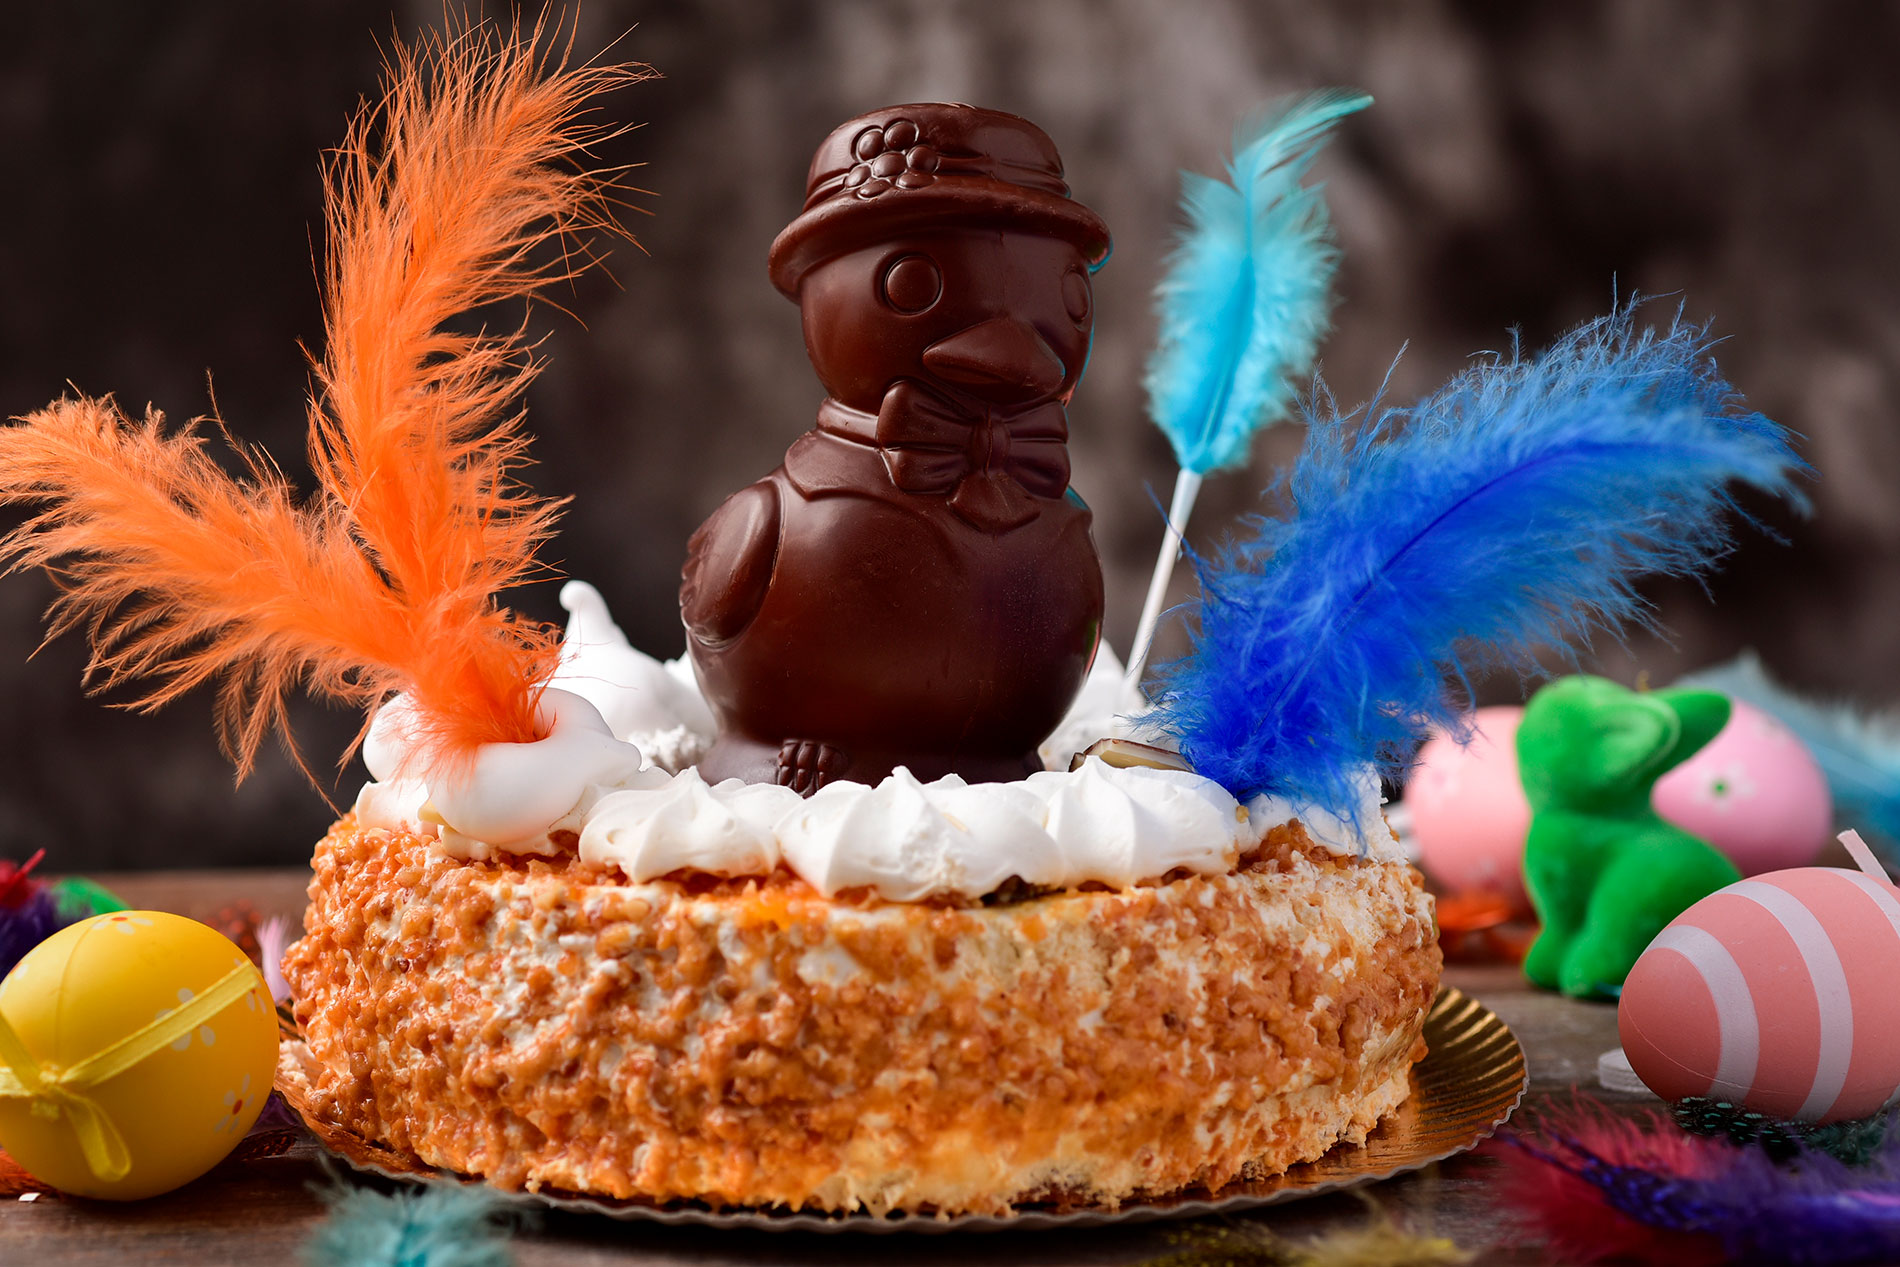 Easter cake in Spain, one of the most popular Easter foods, CÚRATE Trips